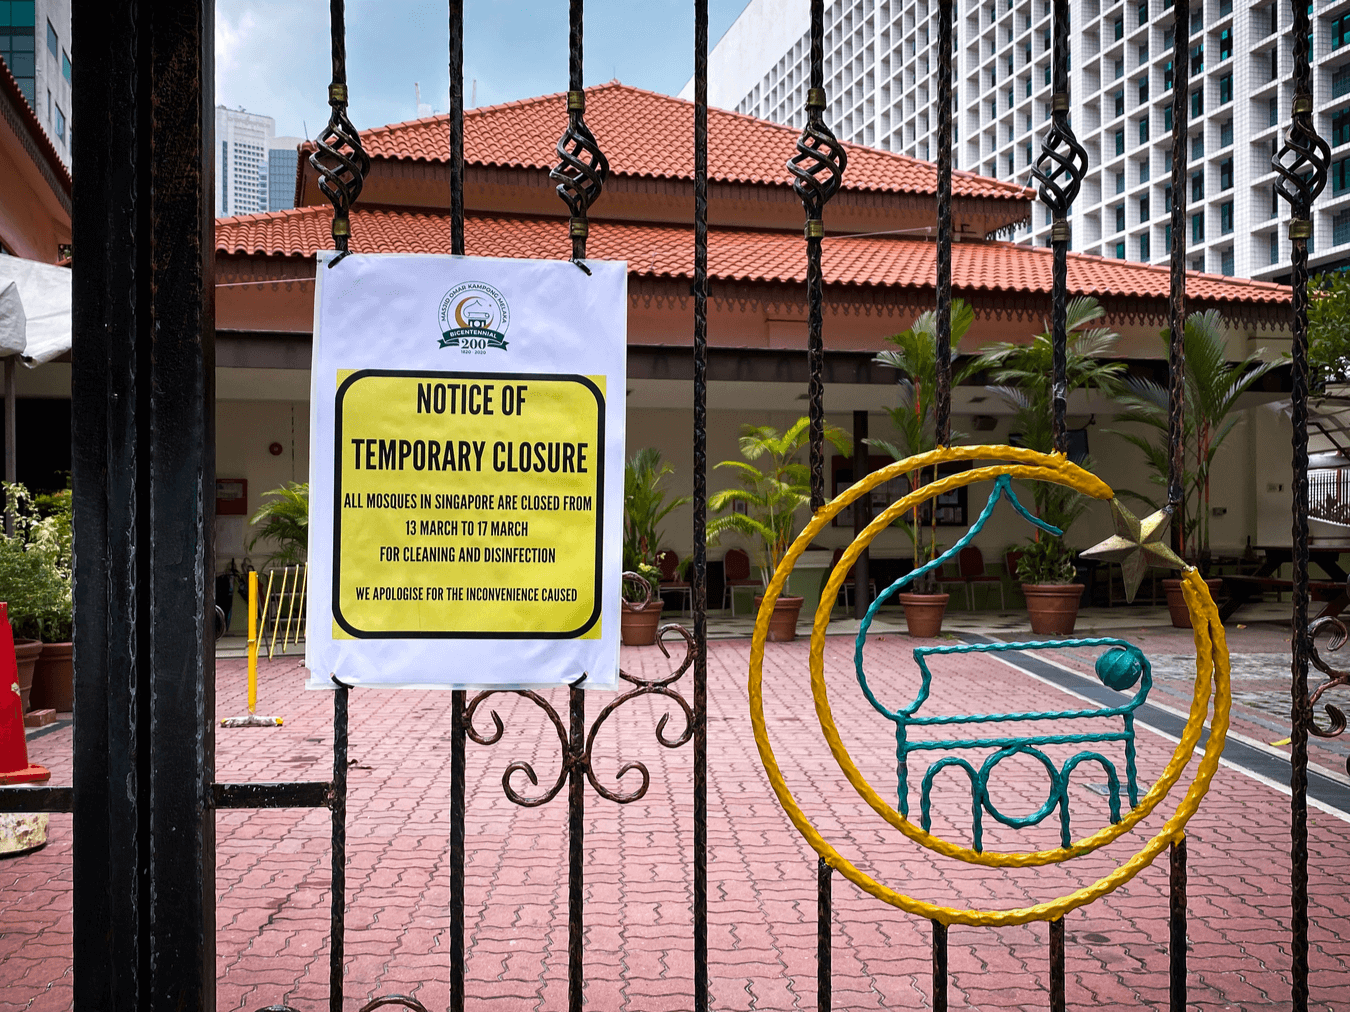 friday prayer, singapore mosque during covid